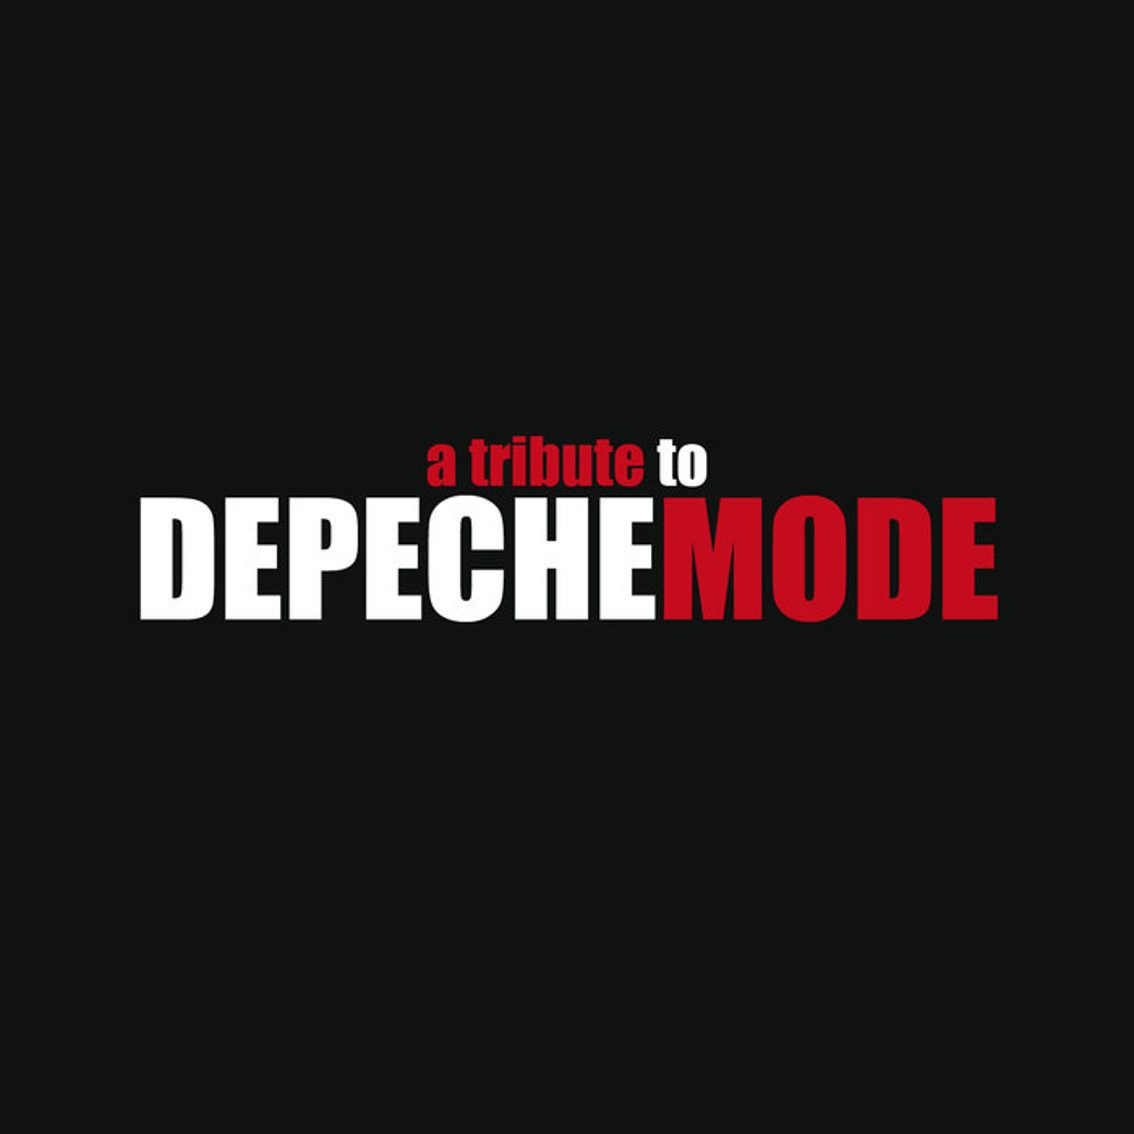 All new Depeche Mode tribute surfaces from the Belgian electronica label Alfa Matrix